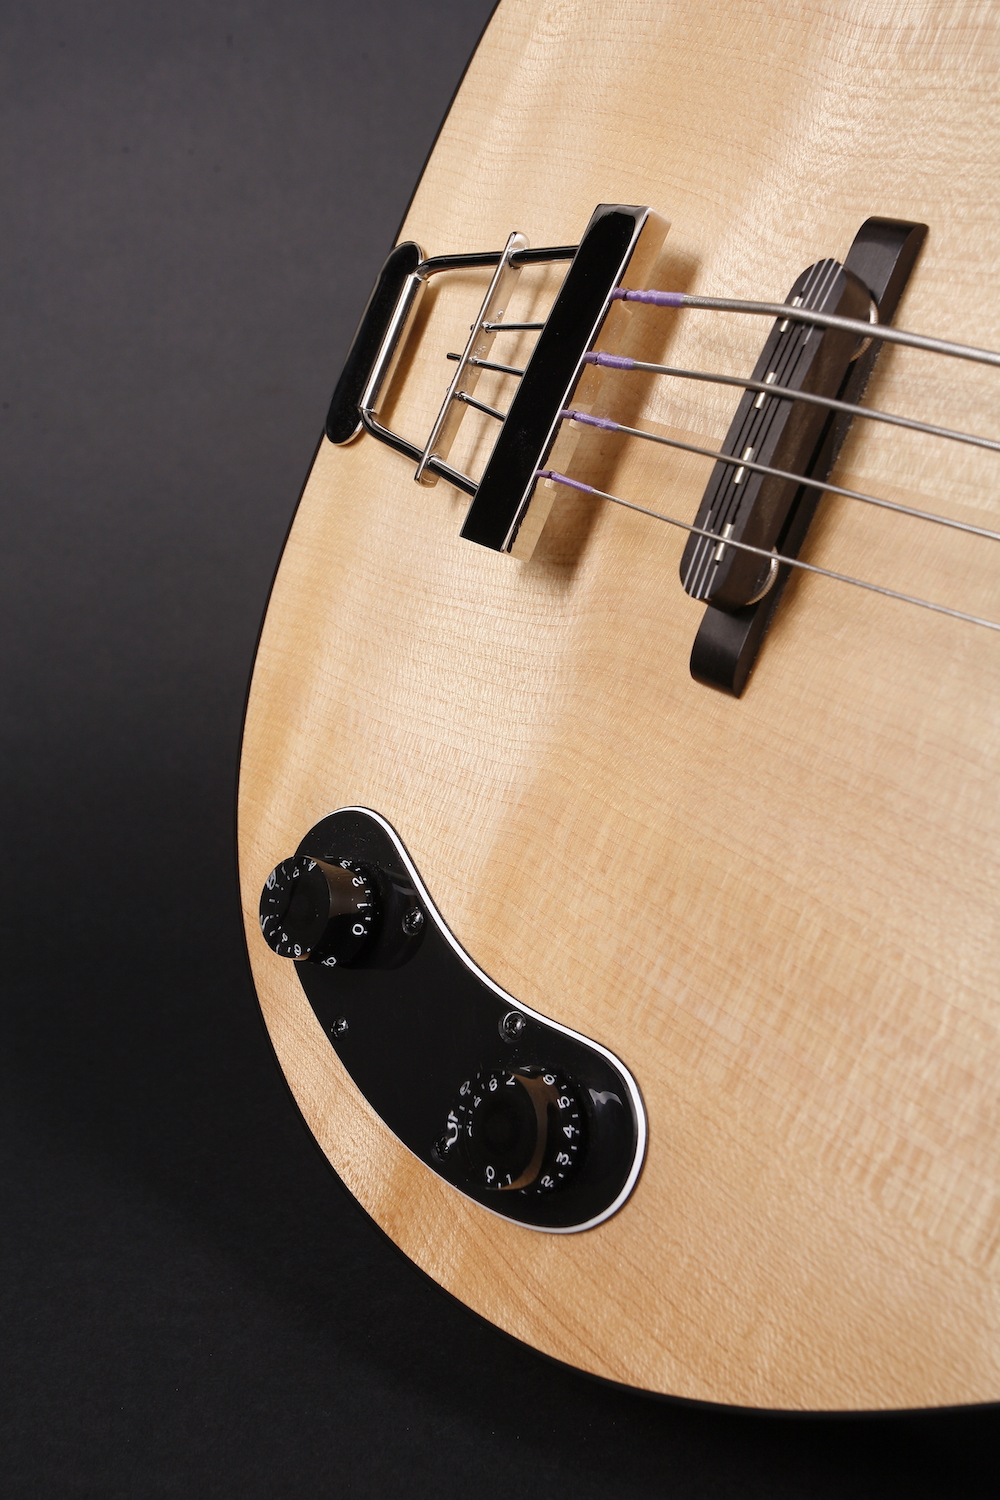 Controls - The Blues Bass has volume and tone controls. With flatwound strings this bass brings a